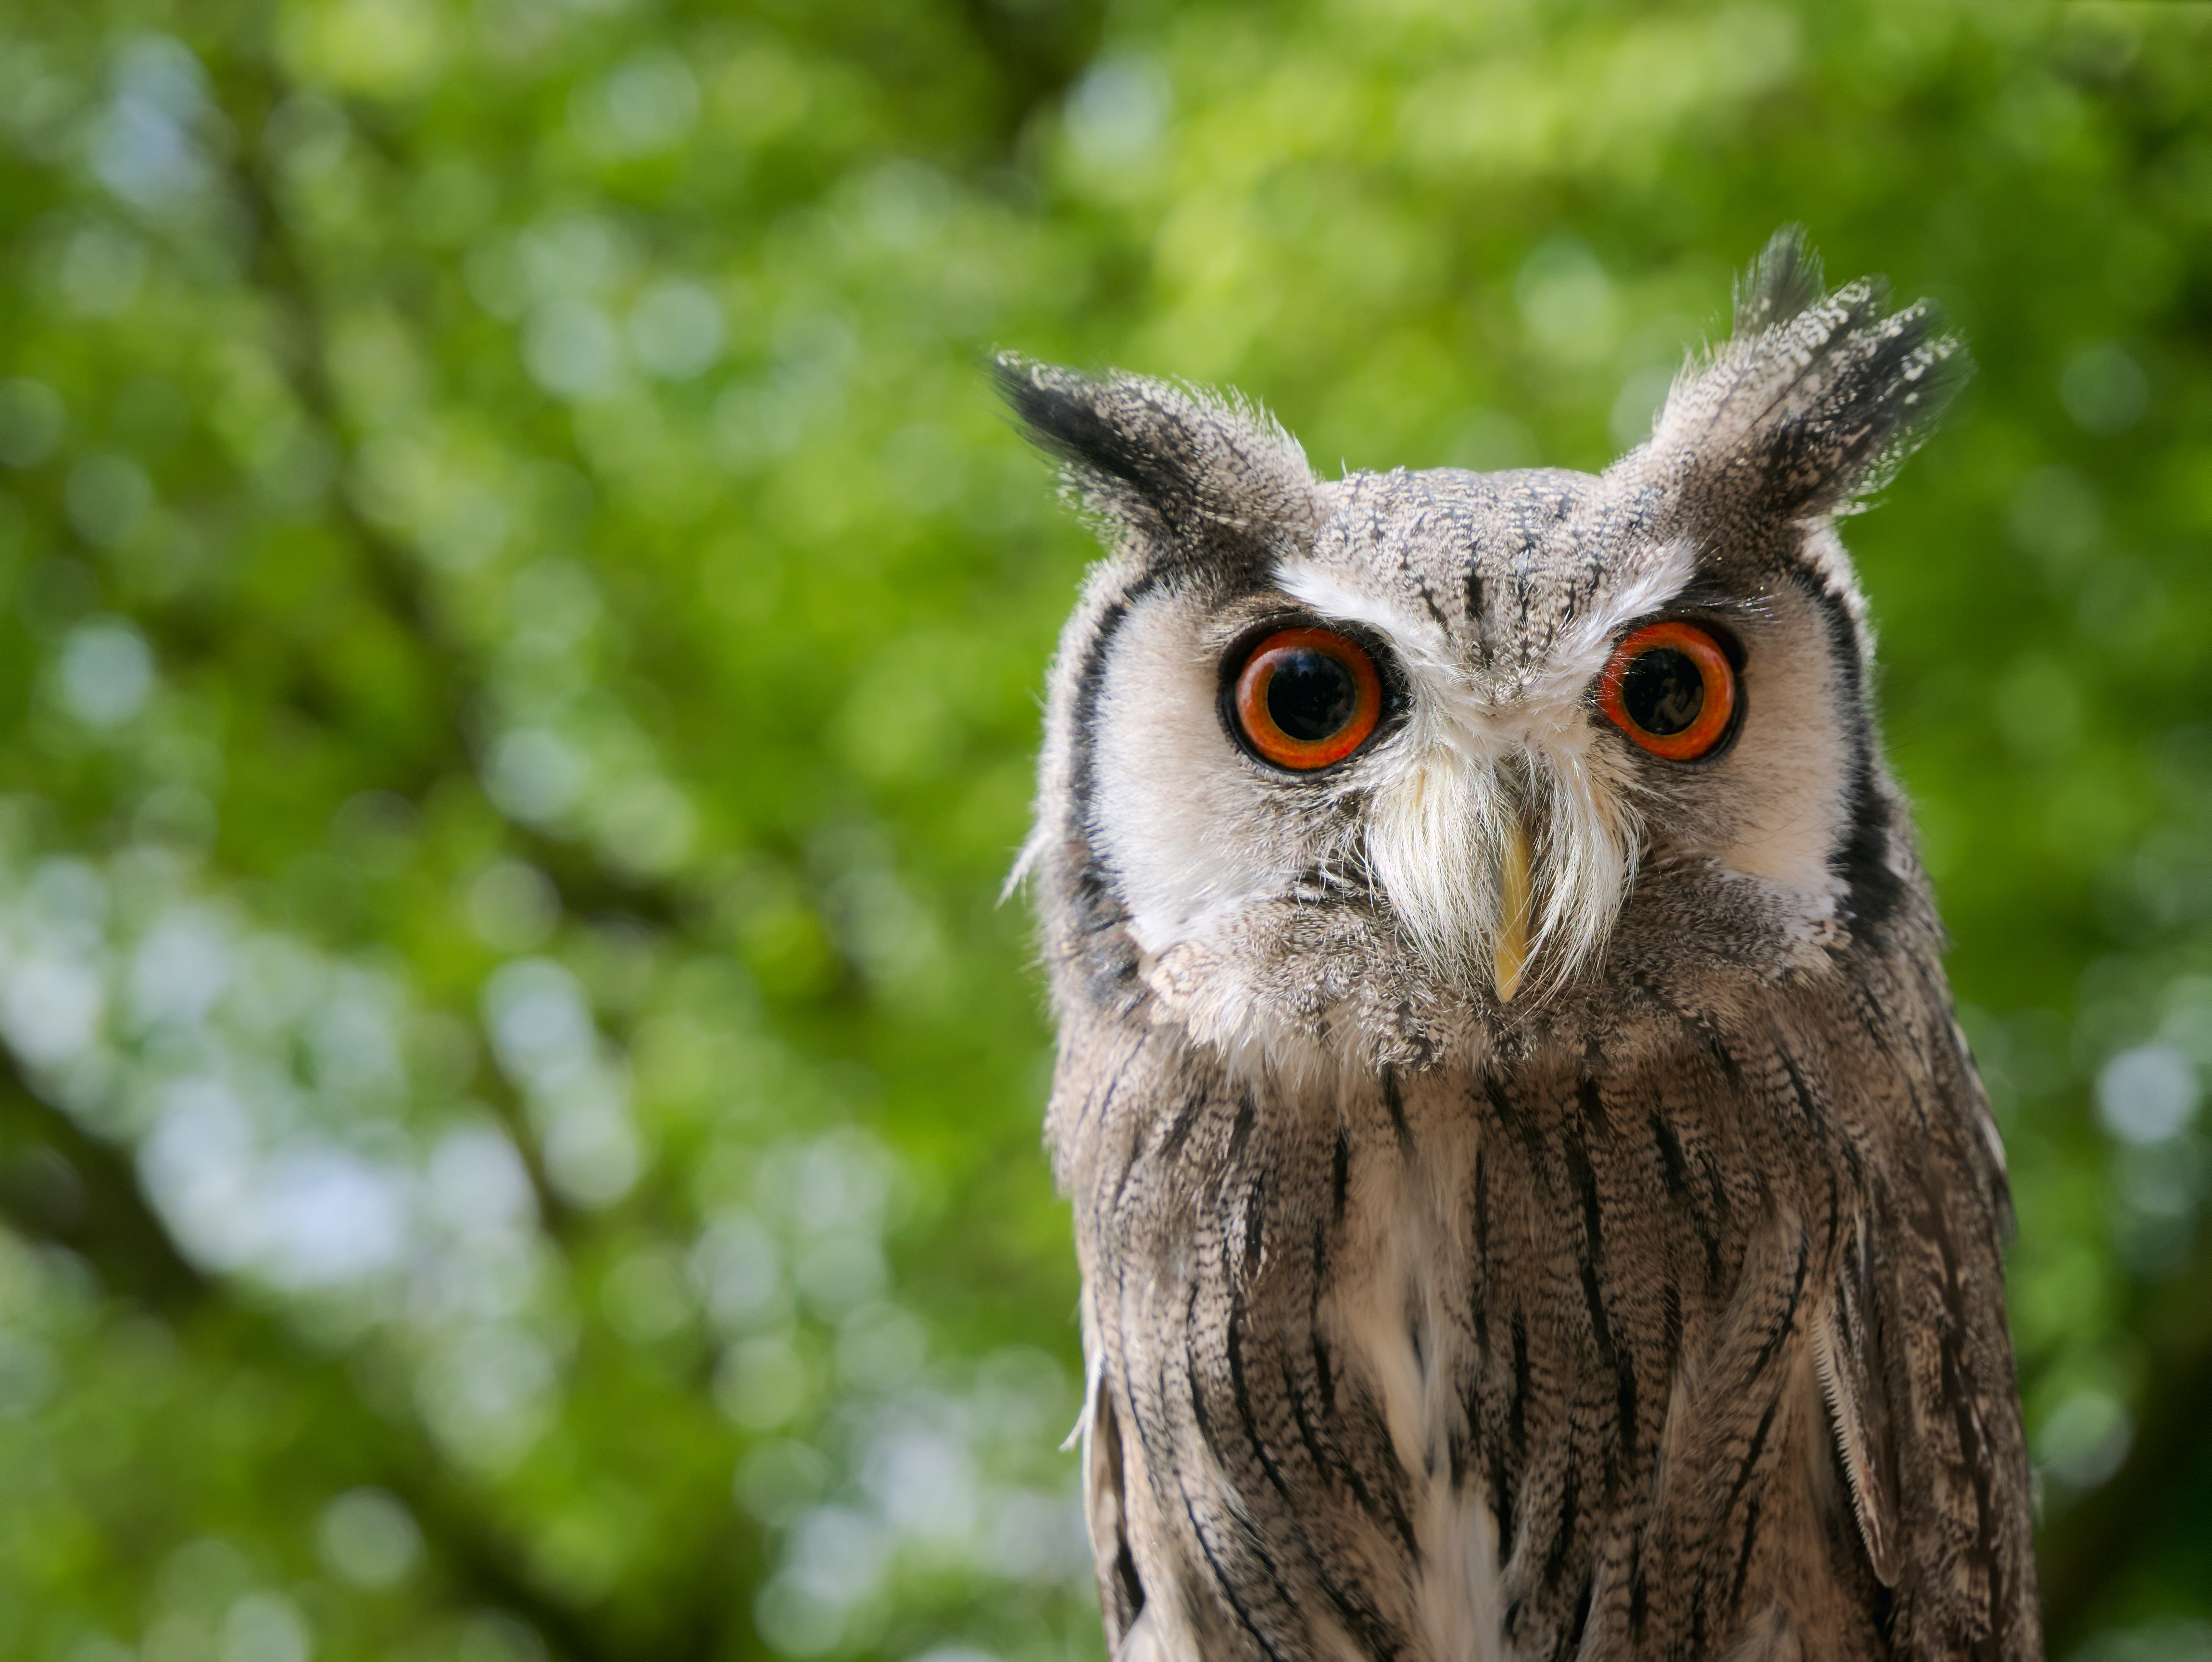 An owl with big orange eyes in a green, lush setting